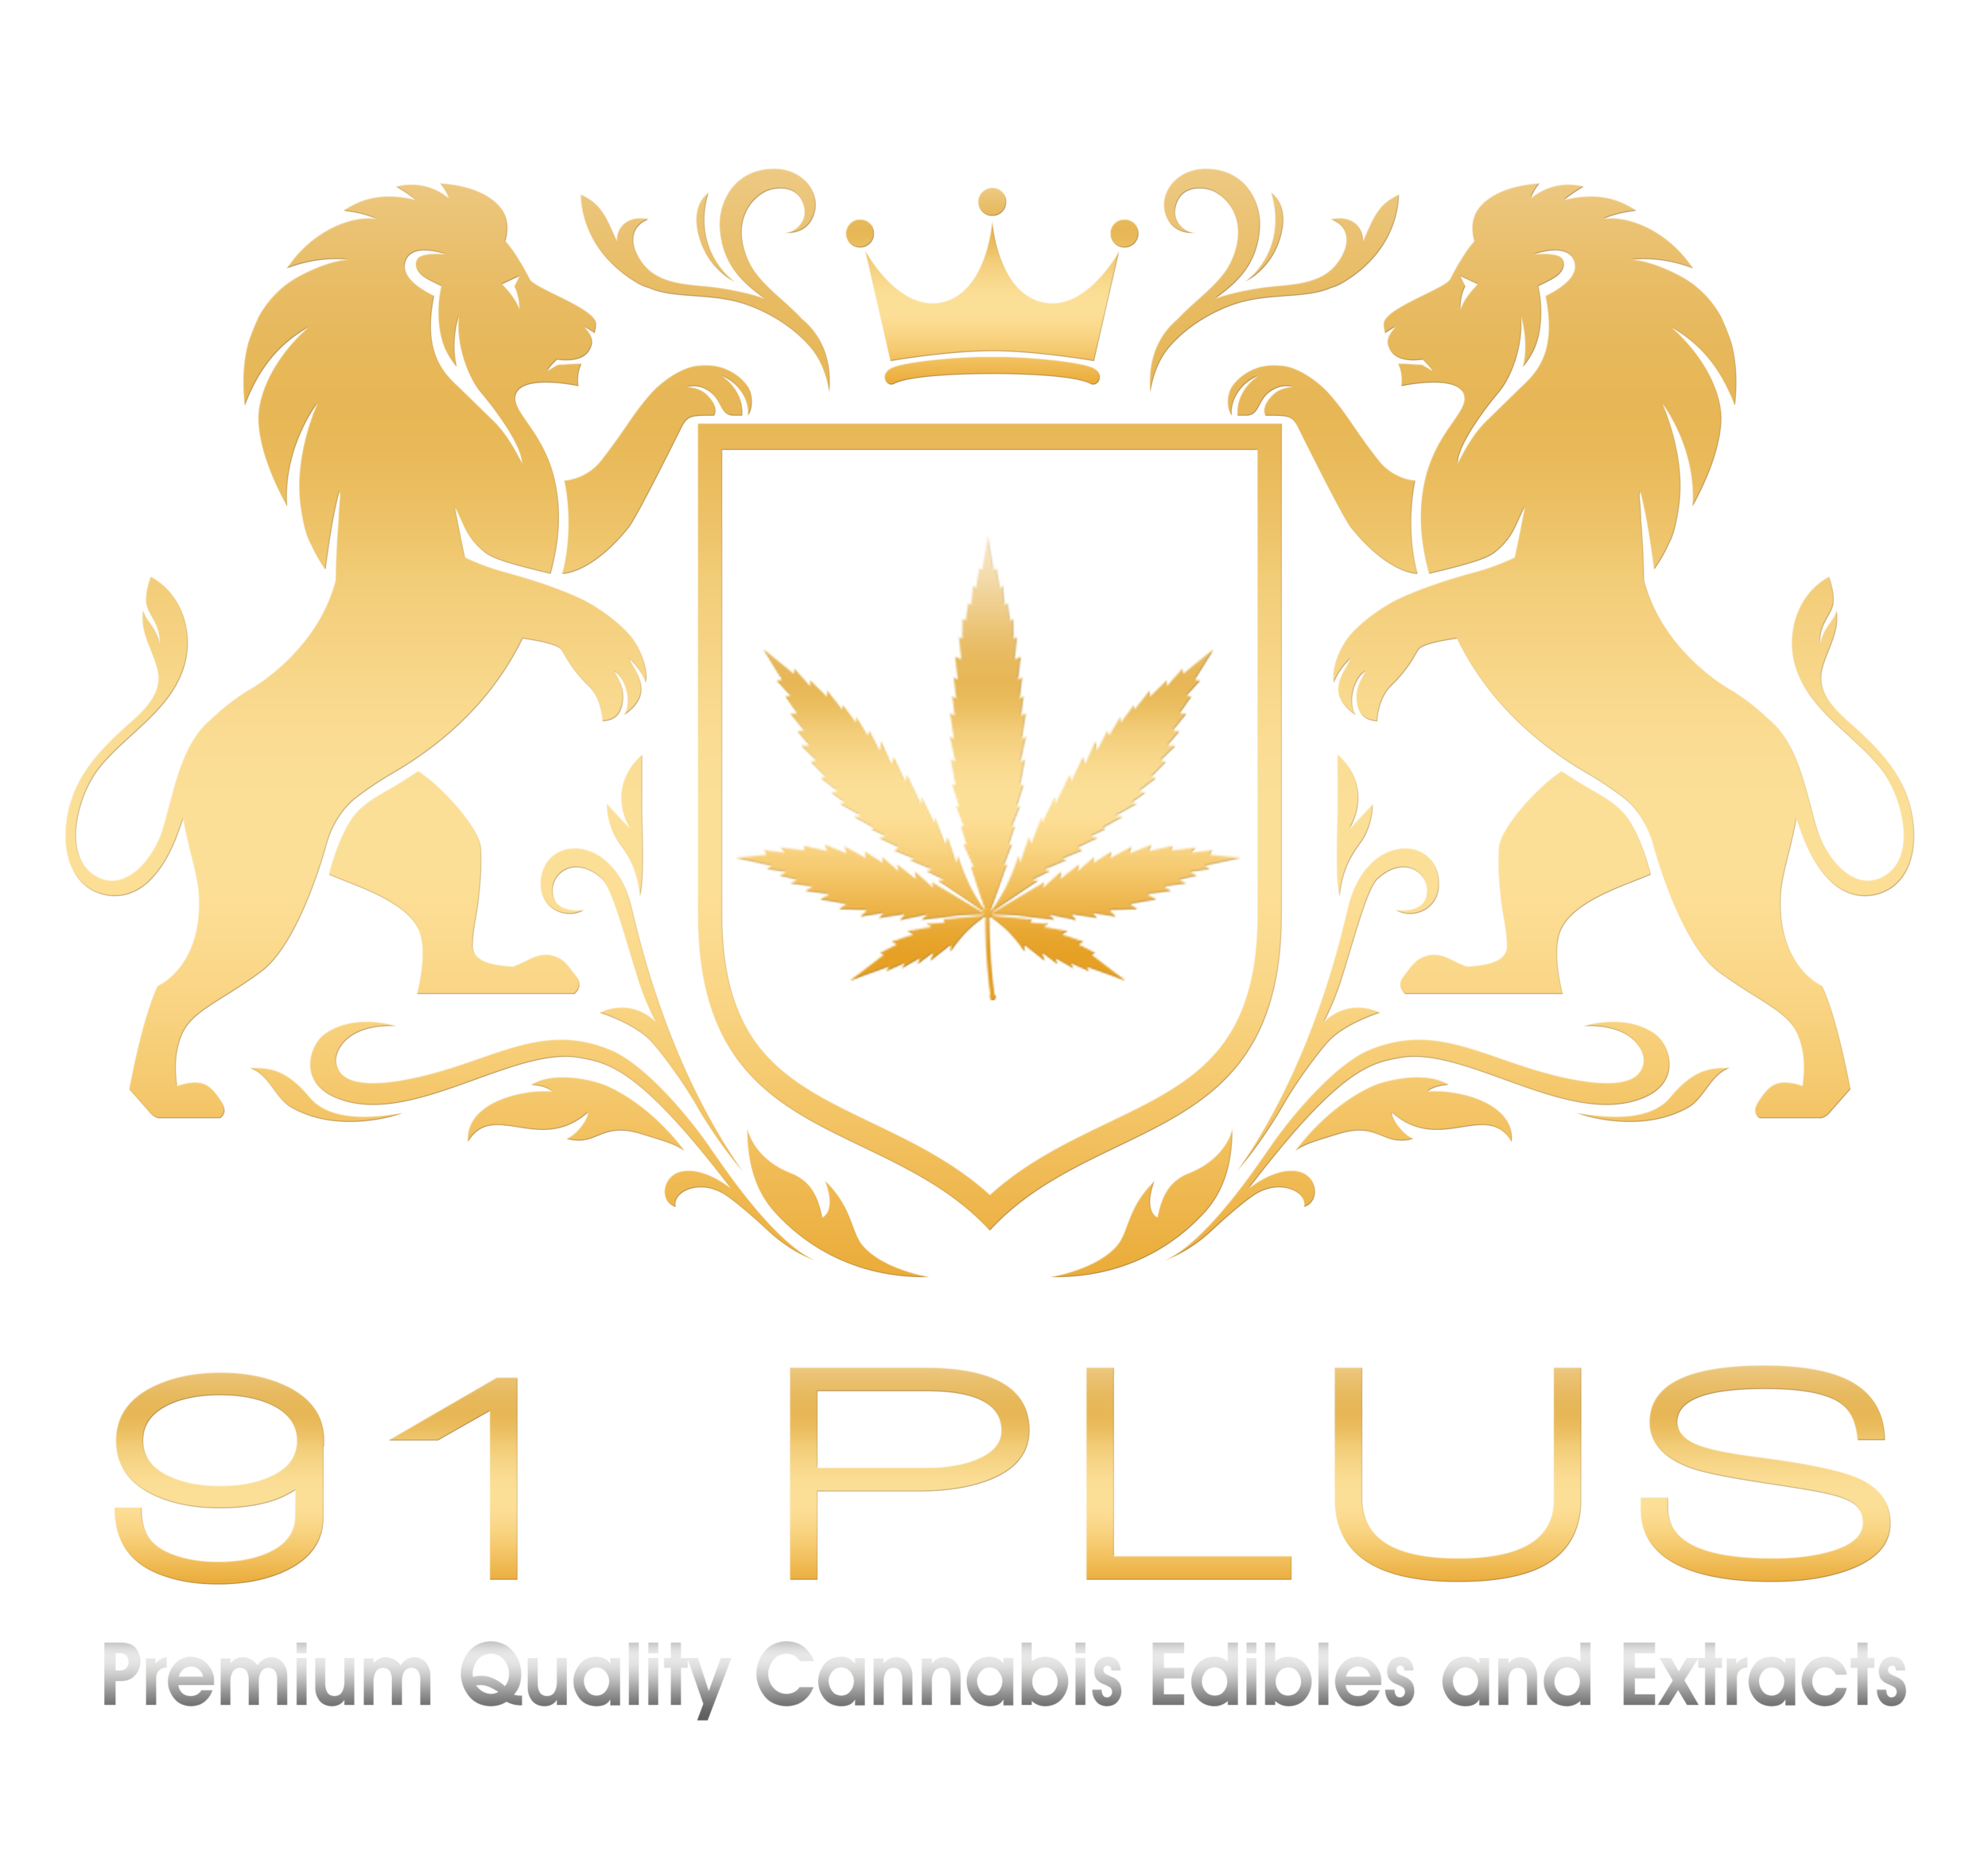 91PLUS-LOGO-NEW.png